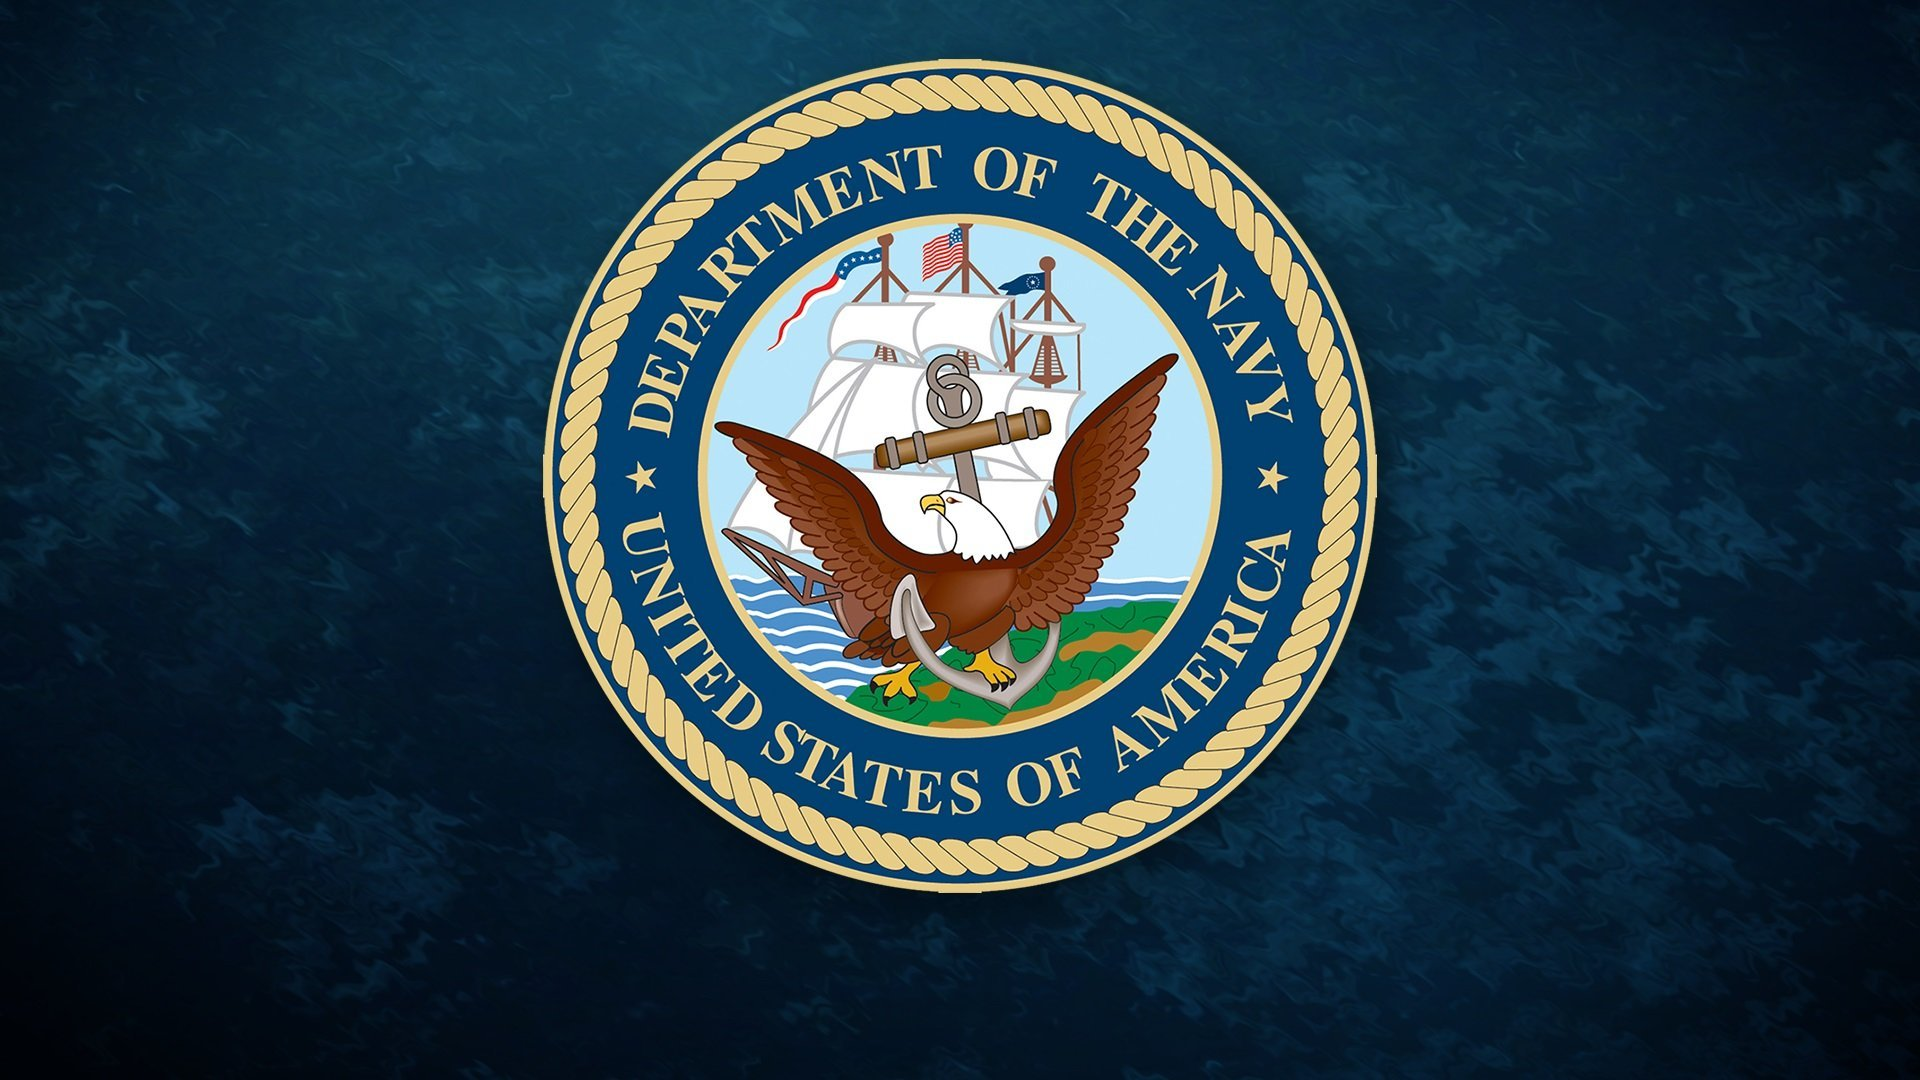 Navy issues memo stressing ethical behavior in wake of SEAL controversy